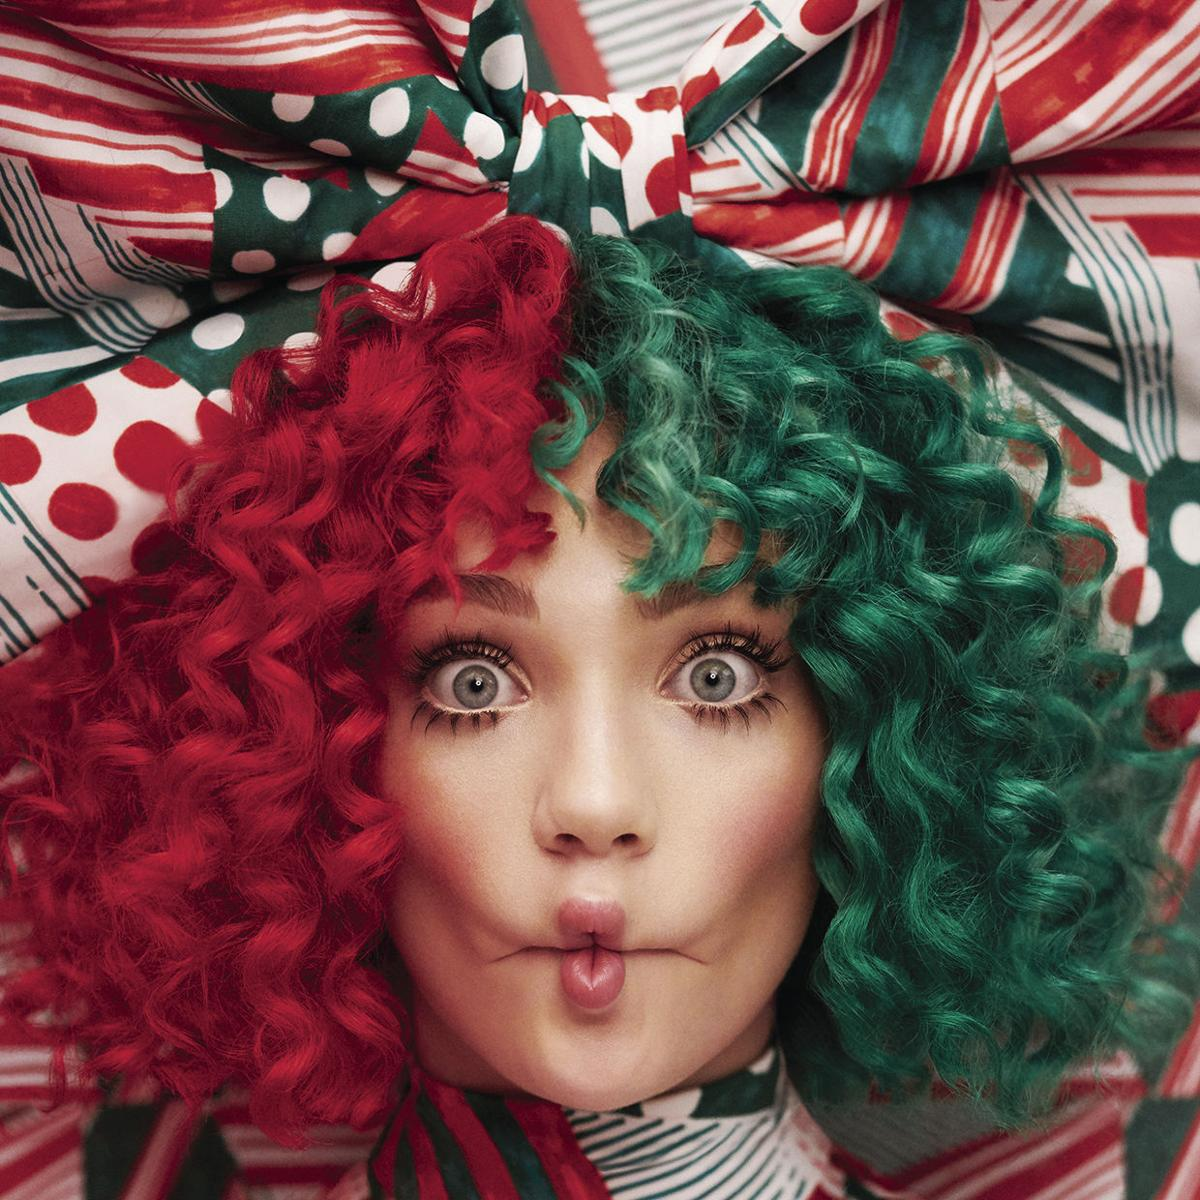 Quirky Christmas song to get you through the holidays | Music News ...